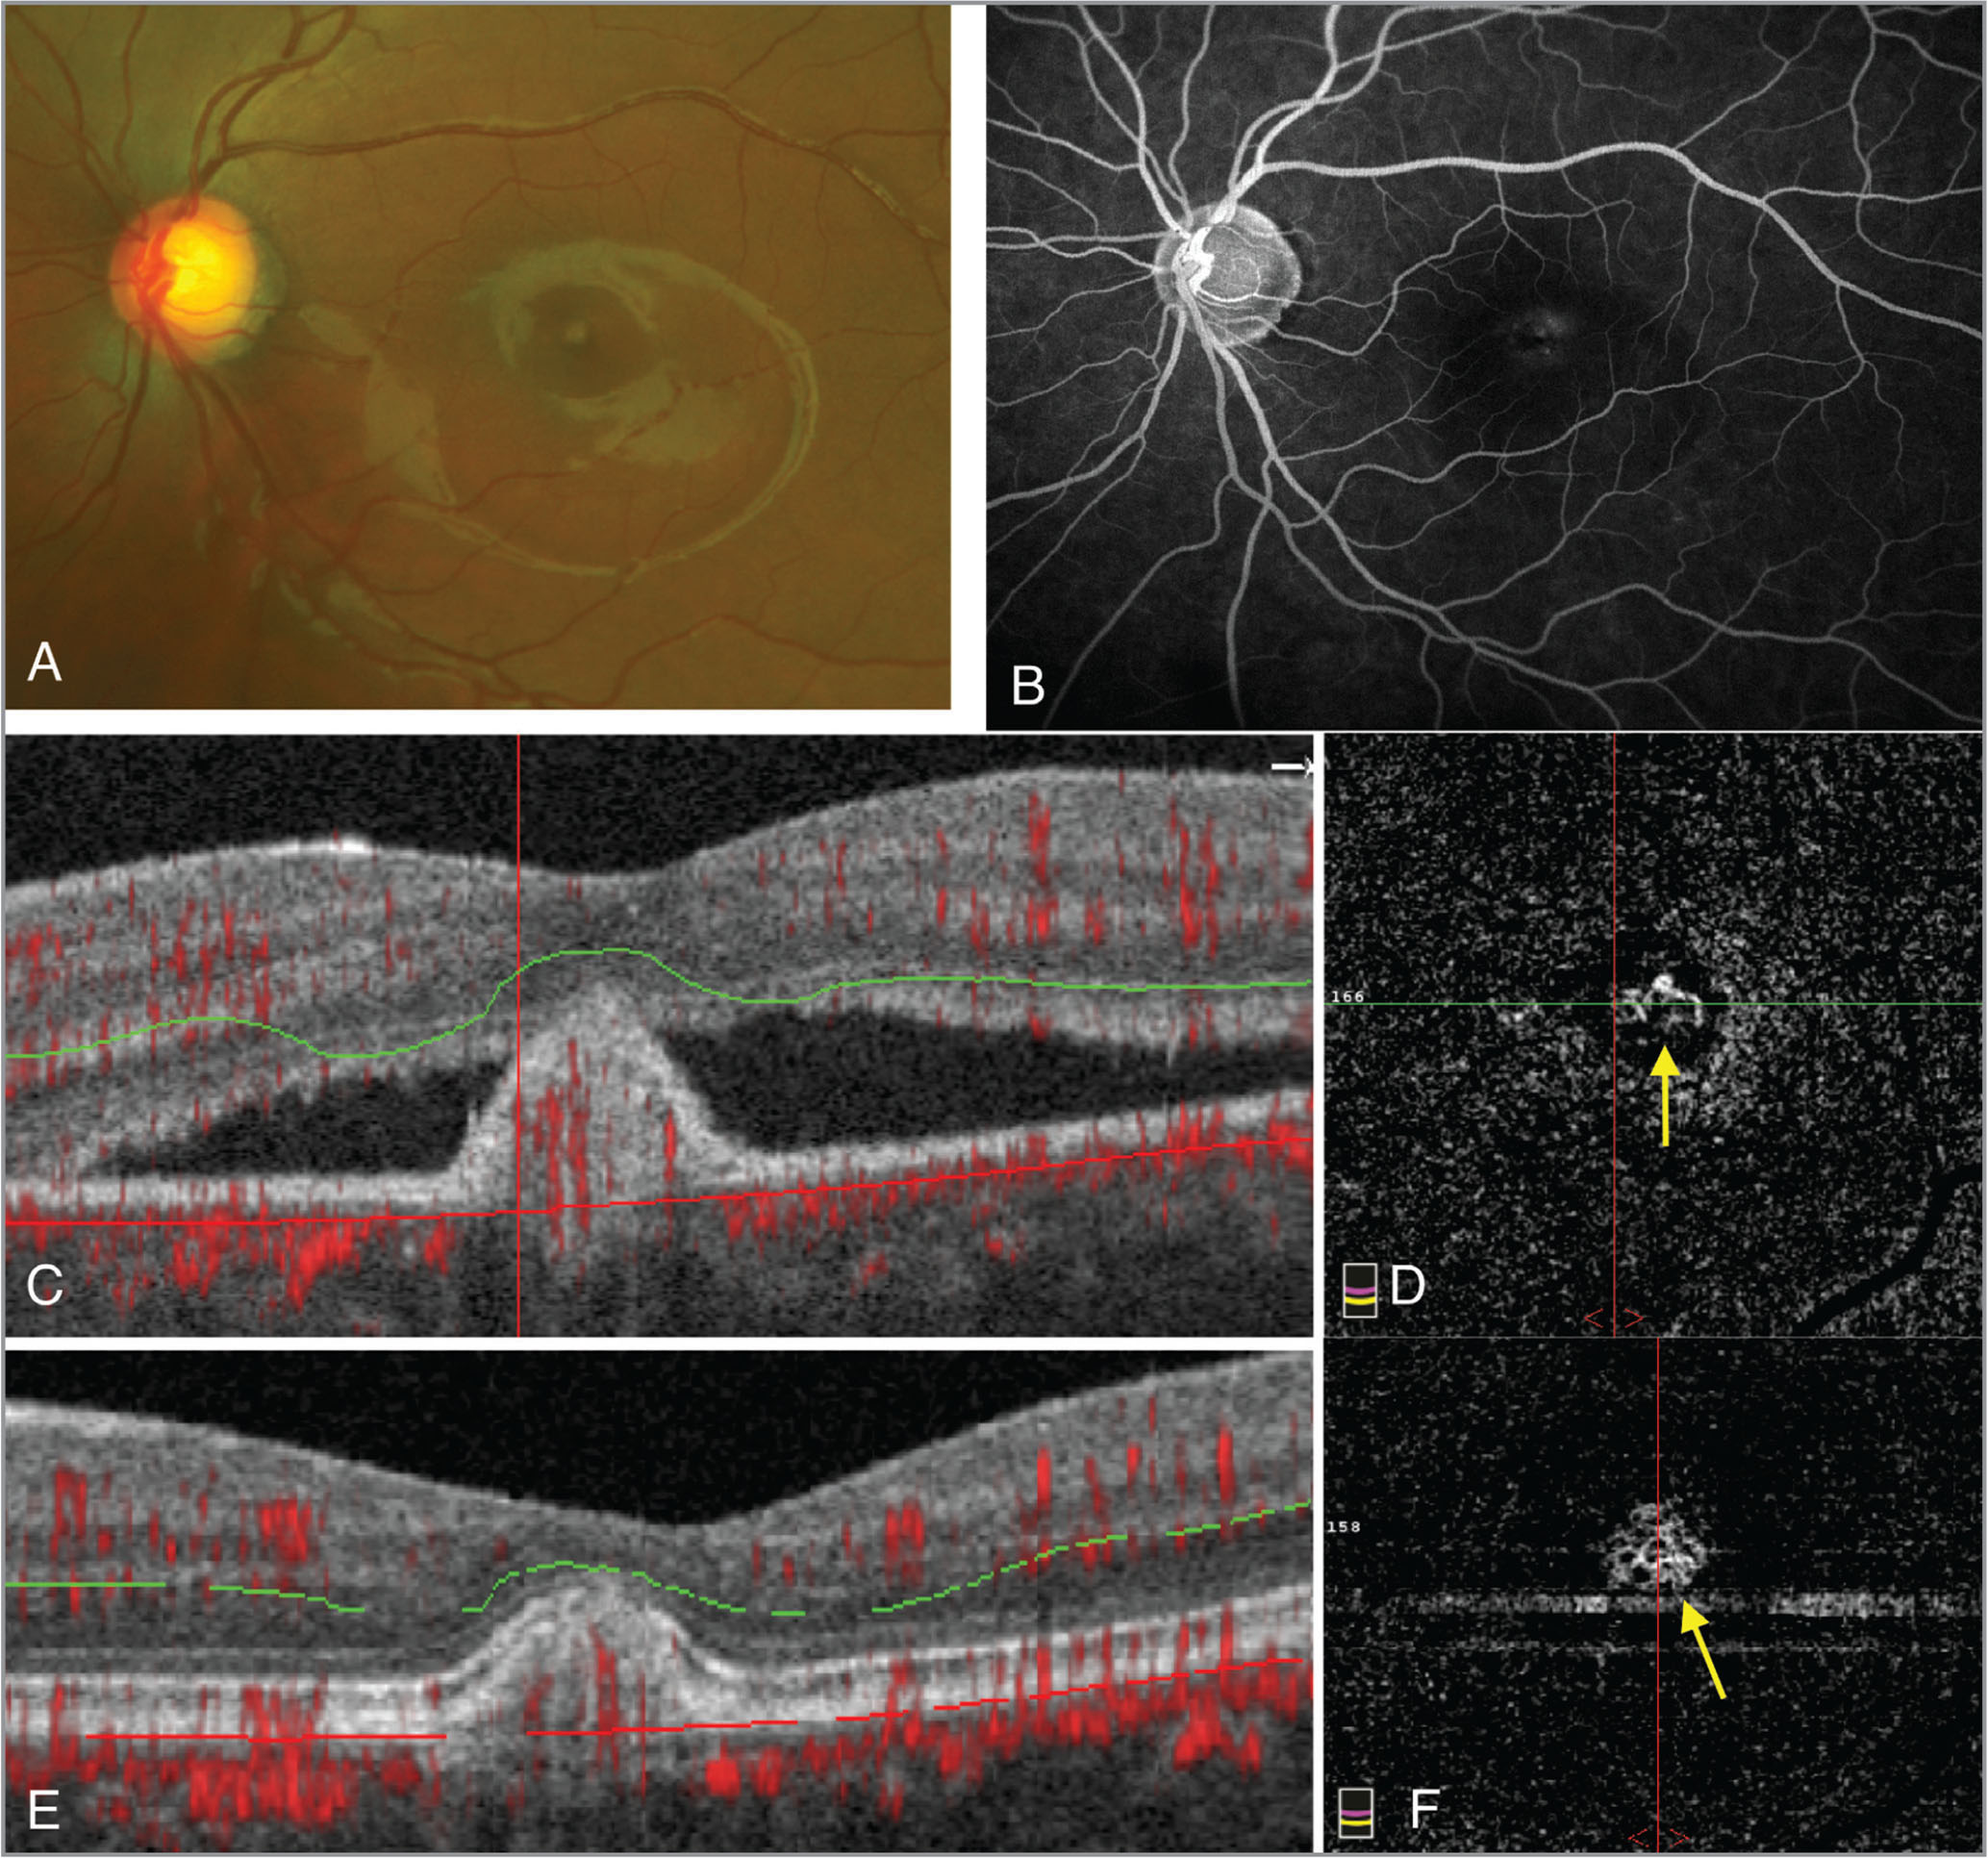 (A) Fundus photo of the left eye showing a retinal pigment epithelium detachment (RPED) and subretinal fluid. (B) Late-frame fluorescein angiography image of the left eye shows blockage from the RPED along with subtle hyperfluorescence. (C) An optical coherence tomography (OCT) B-scan with outer retina segmentation and OCT angiography (OCTA) decorrelation signal overlay show subretinal fluid with a RPED that has increased flow signal indicative of choroidal neovascularization (CNV). (D) Corresponding en face OCTA of the outer retina shows a definite CNV membrane (arrow). (E) Follow-up OCT B-scan of the outer retina with resolution of subretinal fluid, and corresponding en face OCTA showing persistence of the CNV membrane (F, arrow).